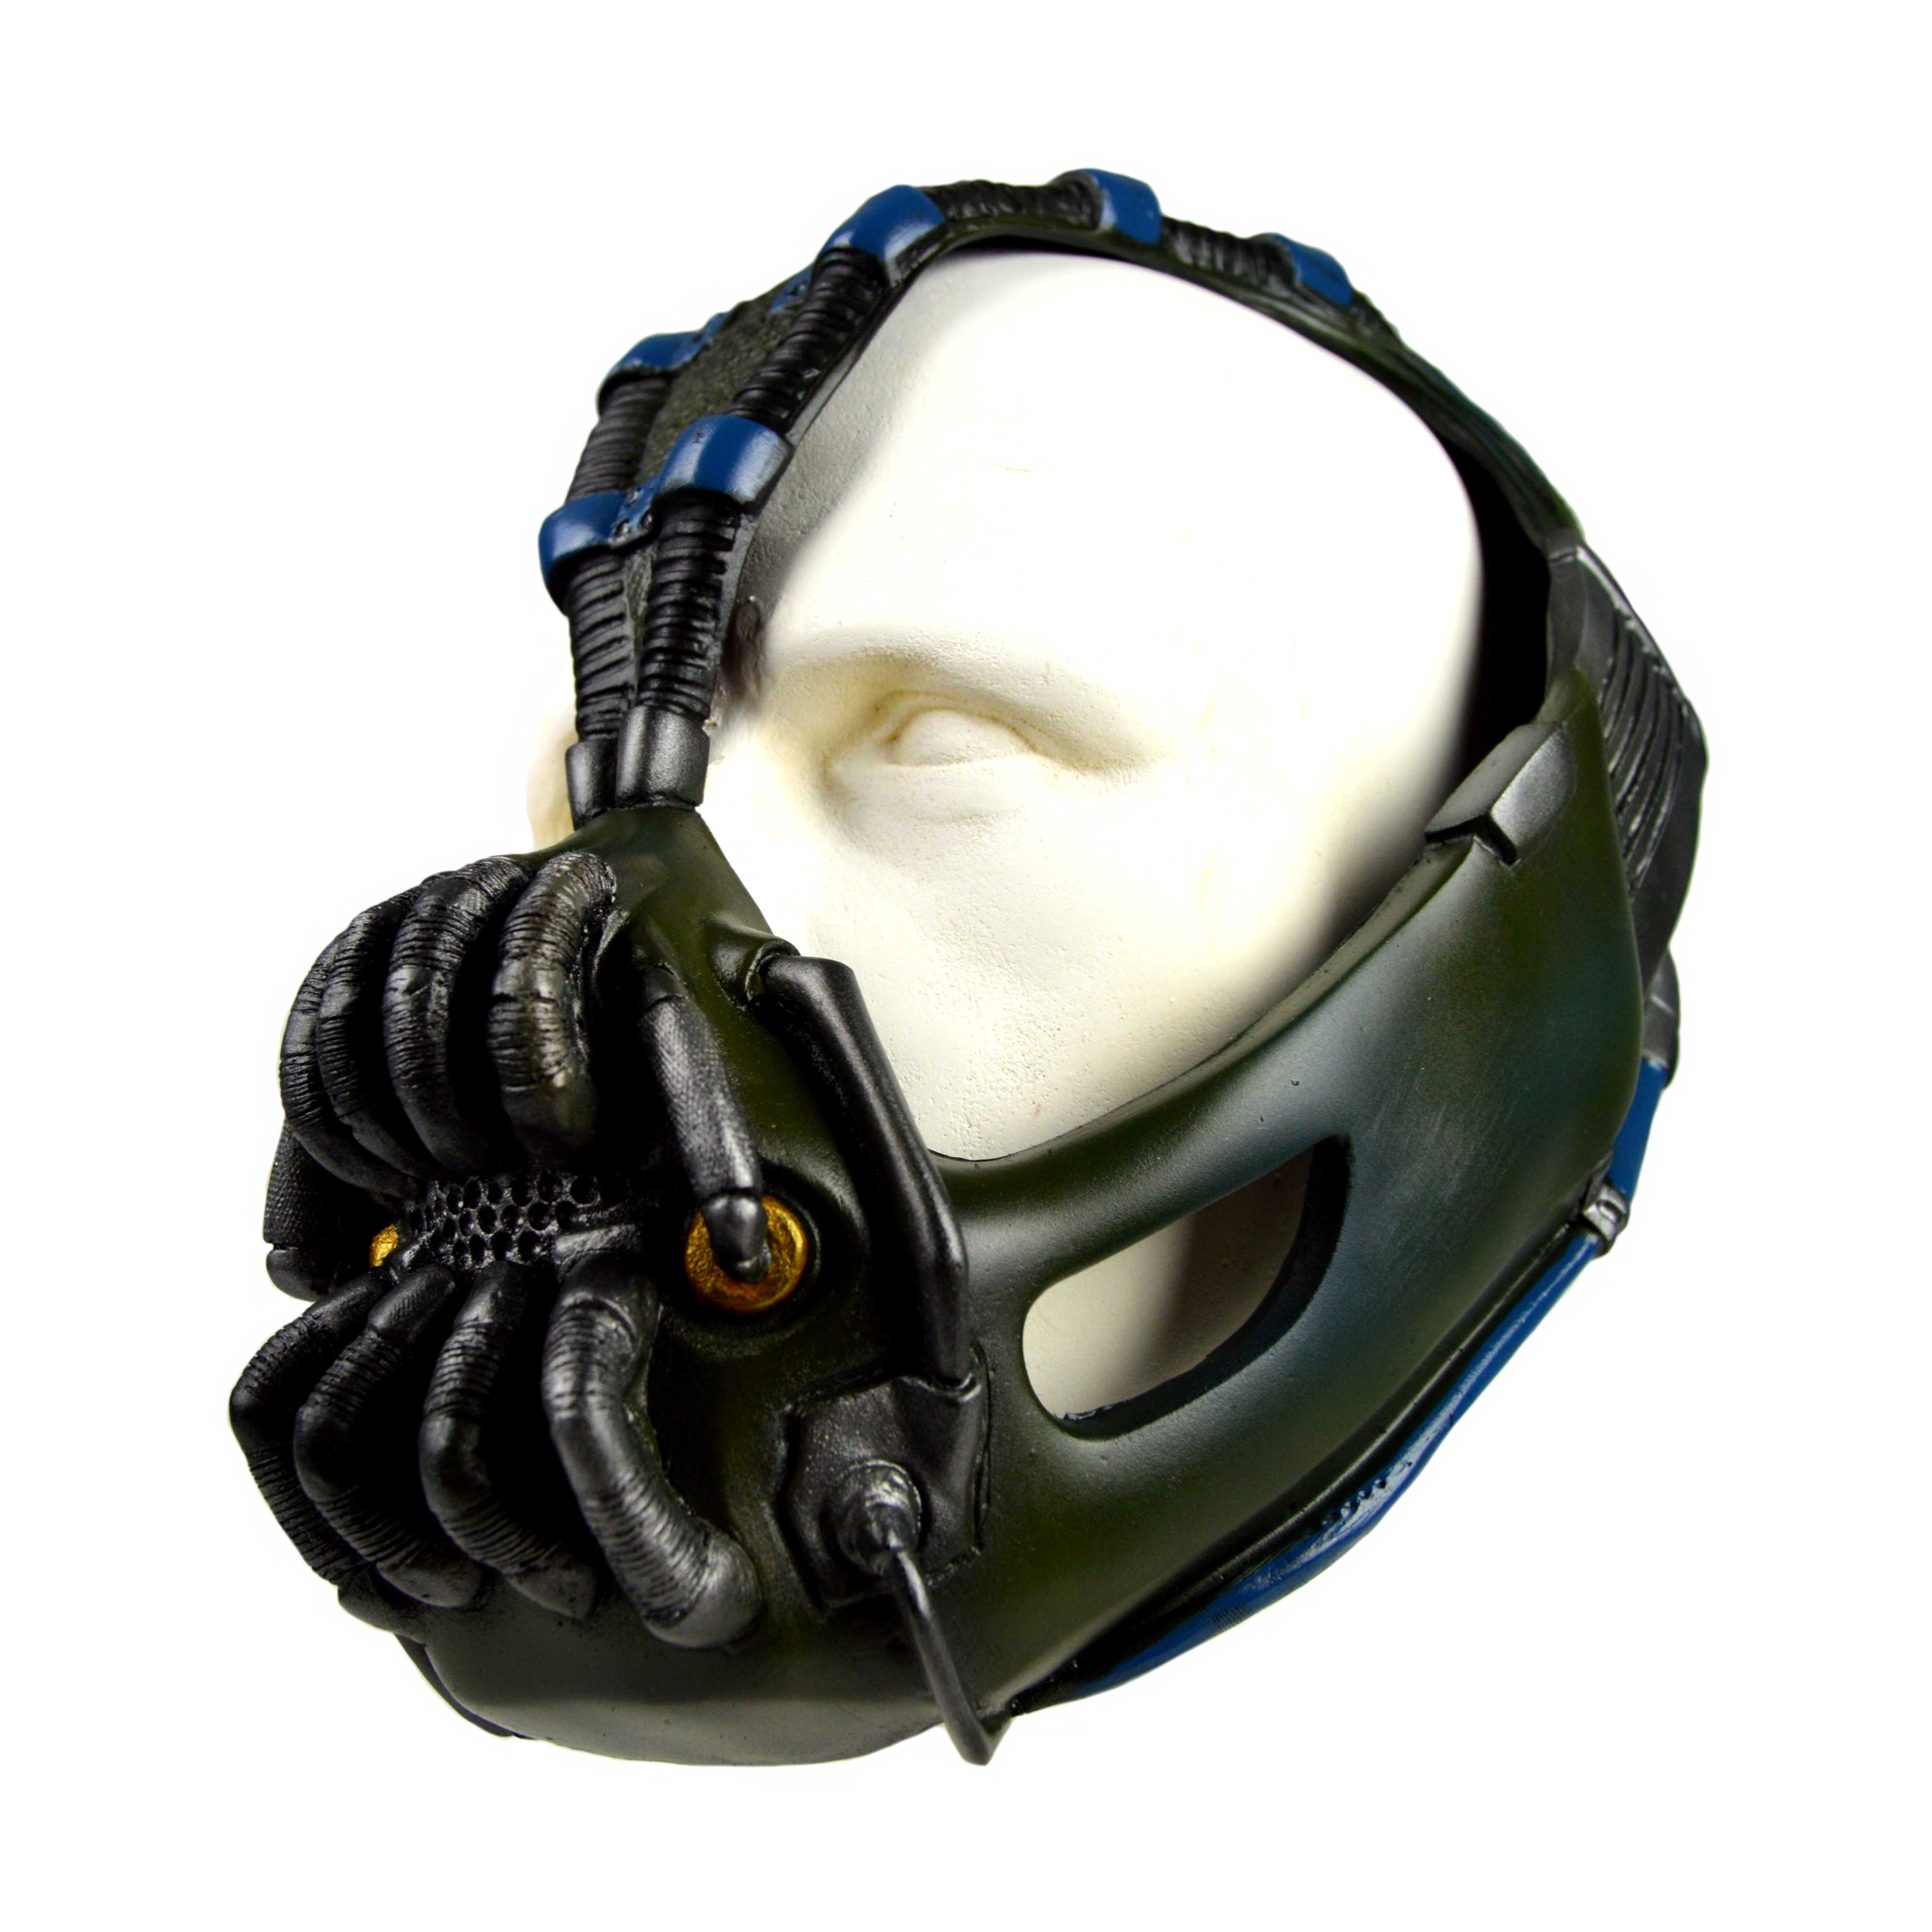 ... Bane Mask painted Tom Hardy Style - Thumbnail 2 ...  sc 1 st  Gotham City FX - Storenvy & Bane Mask painted Tom Hardy Style · Gotham City FX · Online Store ...